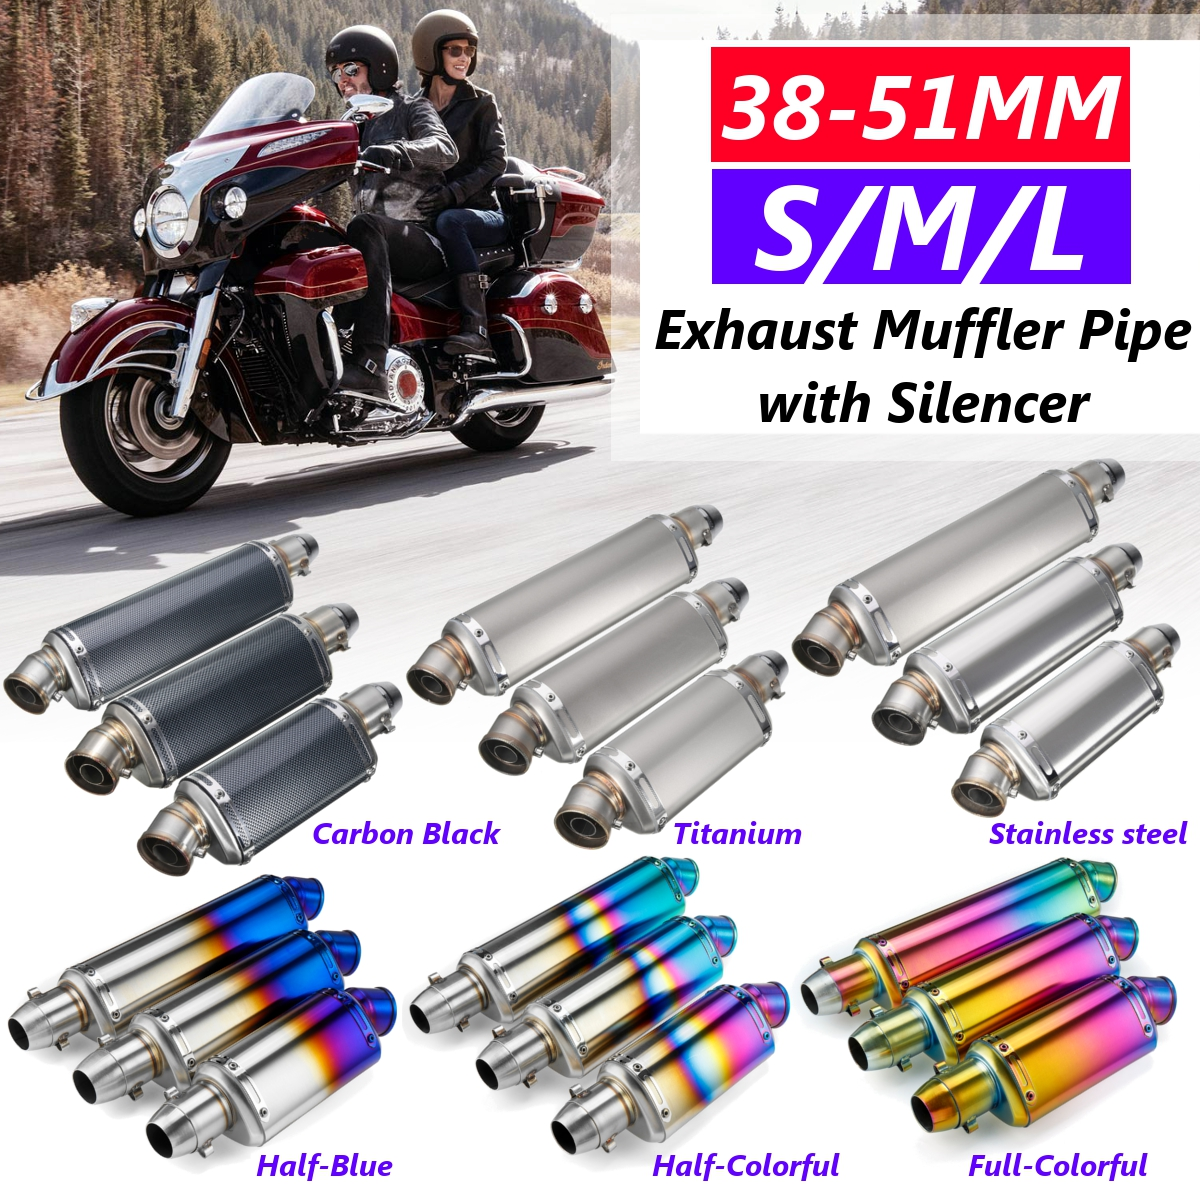 For Honda For Kawasaki 38-51mm Stainless Steel Motorcycle Exhaust Muffler Pipe With Silencer Universal  Exhaust Systems S/M/L